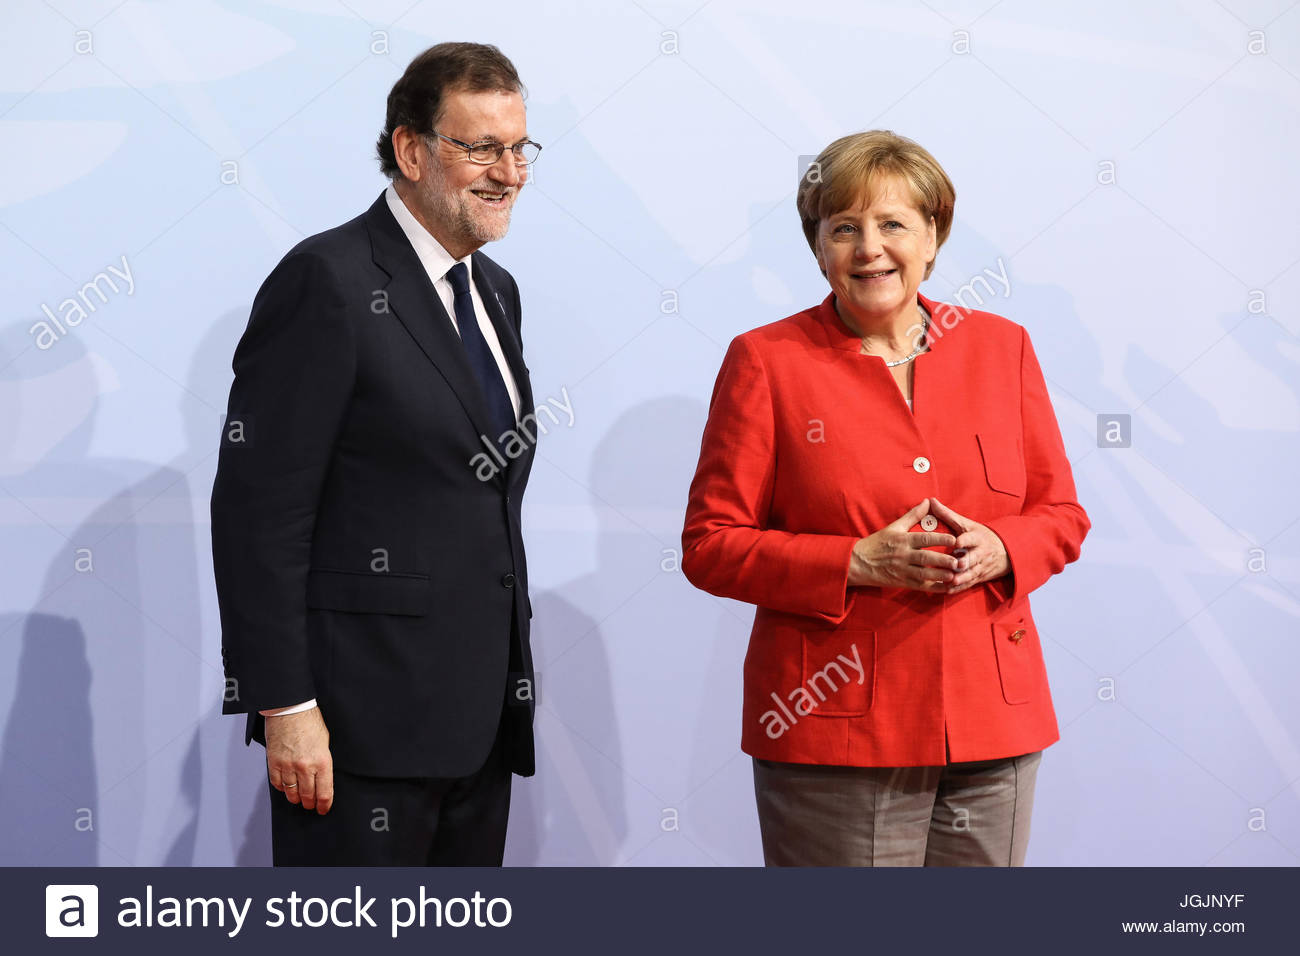 Hamburg, Germany. 7th Jul, 2017. Mariano Rajoy, prime minister of Spain welcomes by German chancellor Angela Merkel Stock Photo